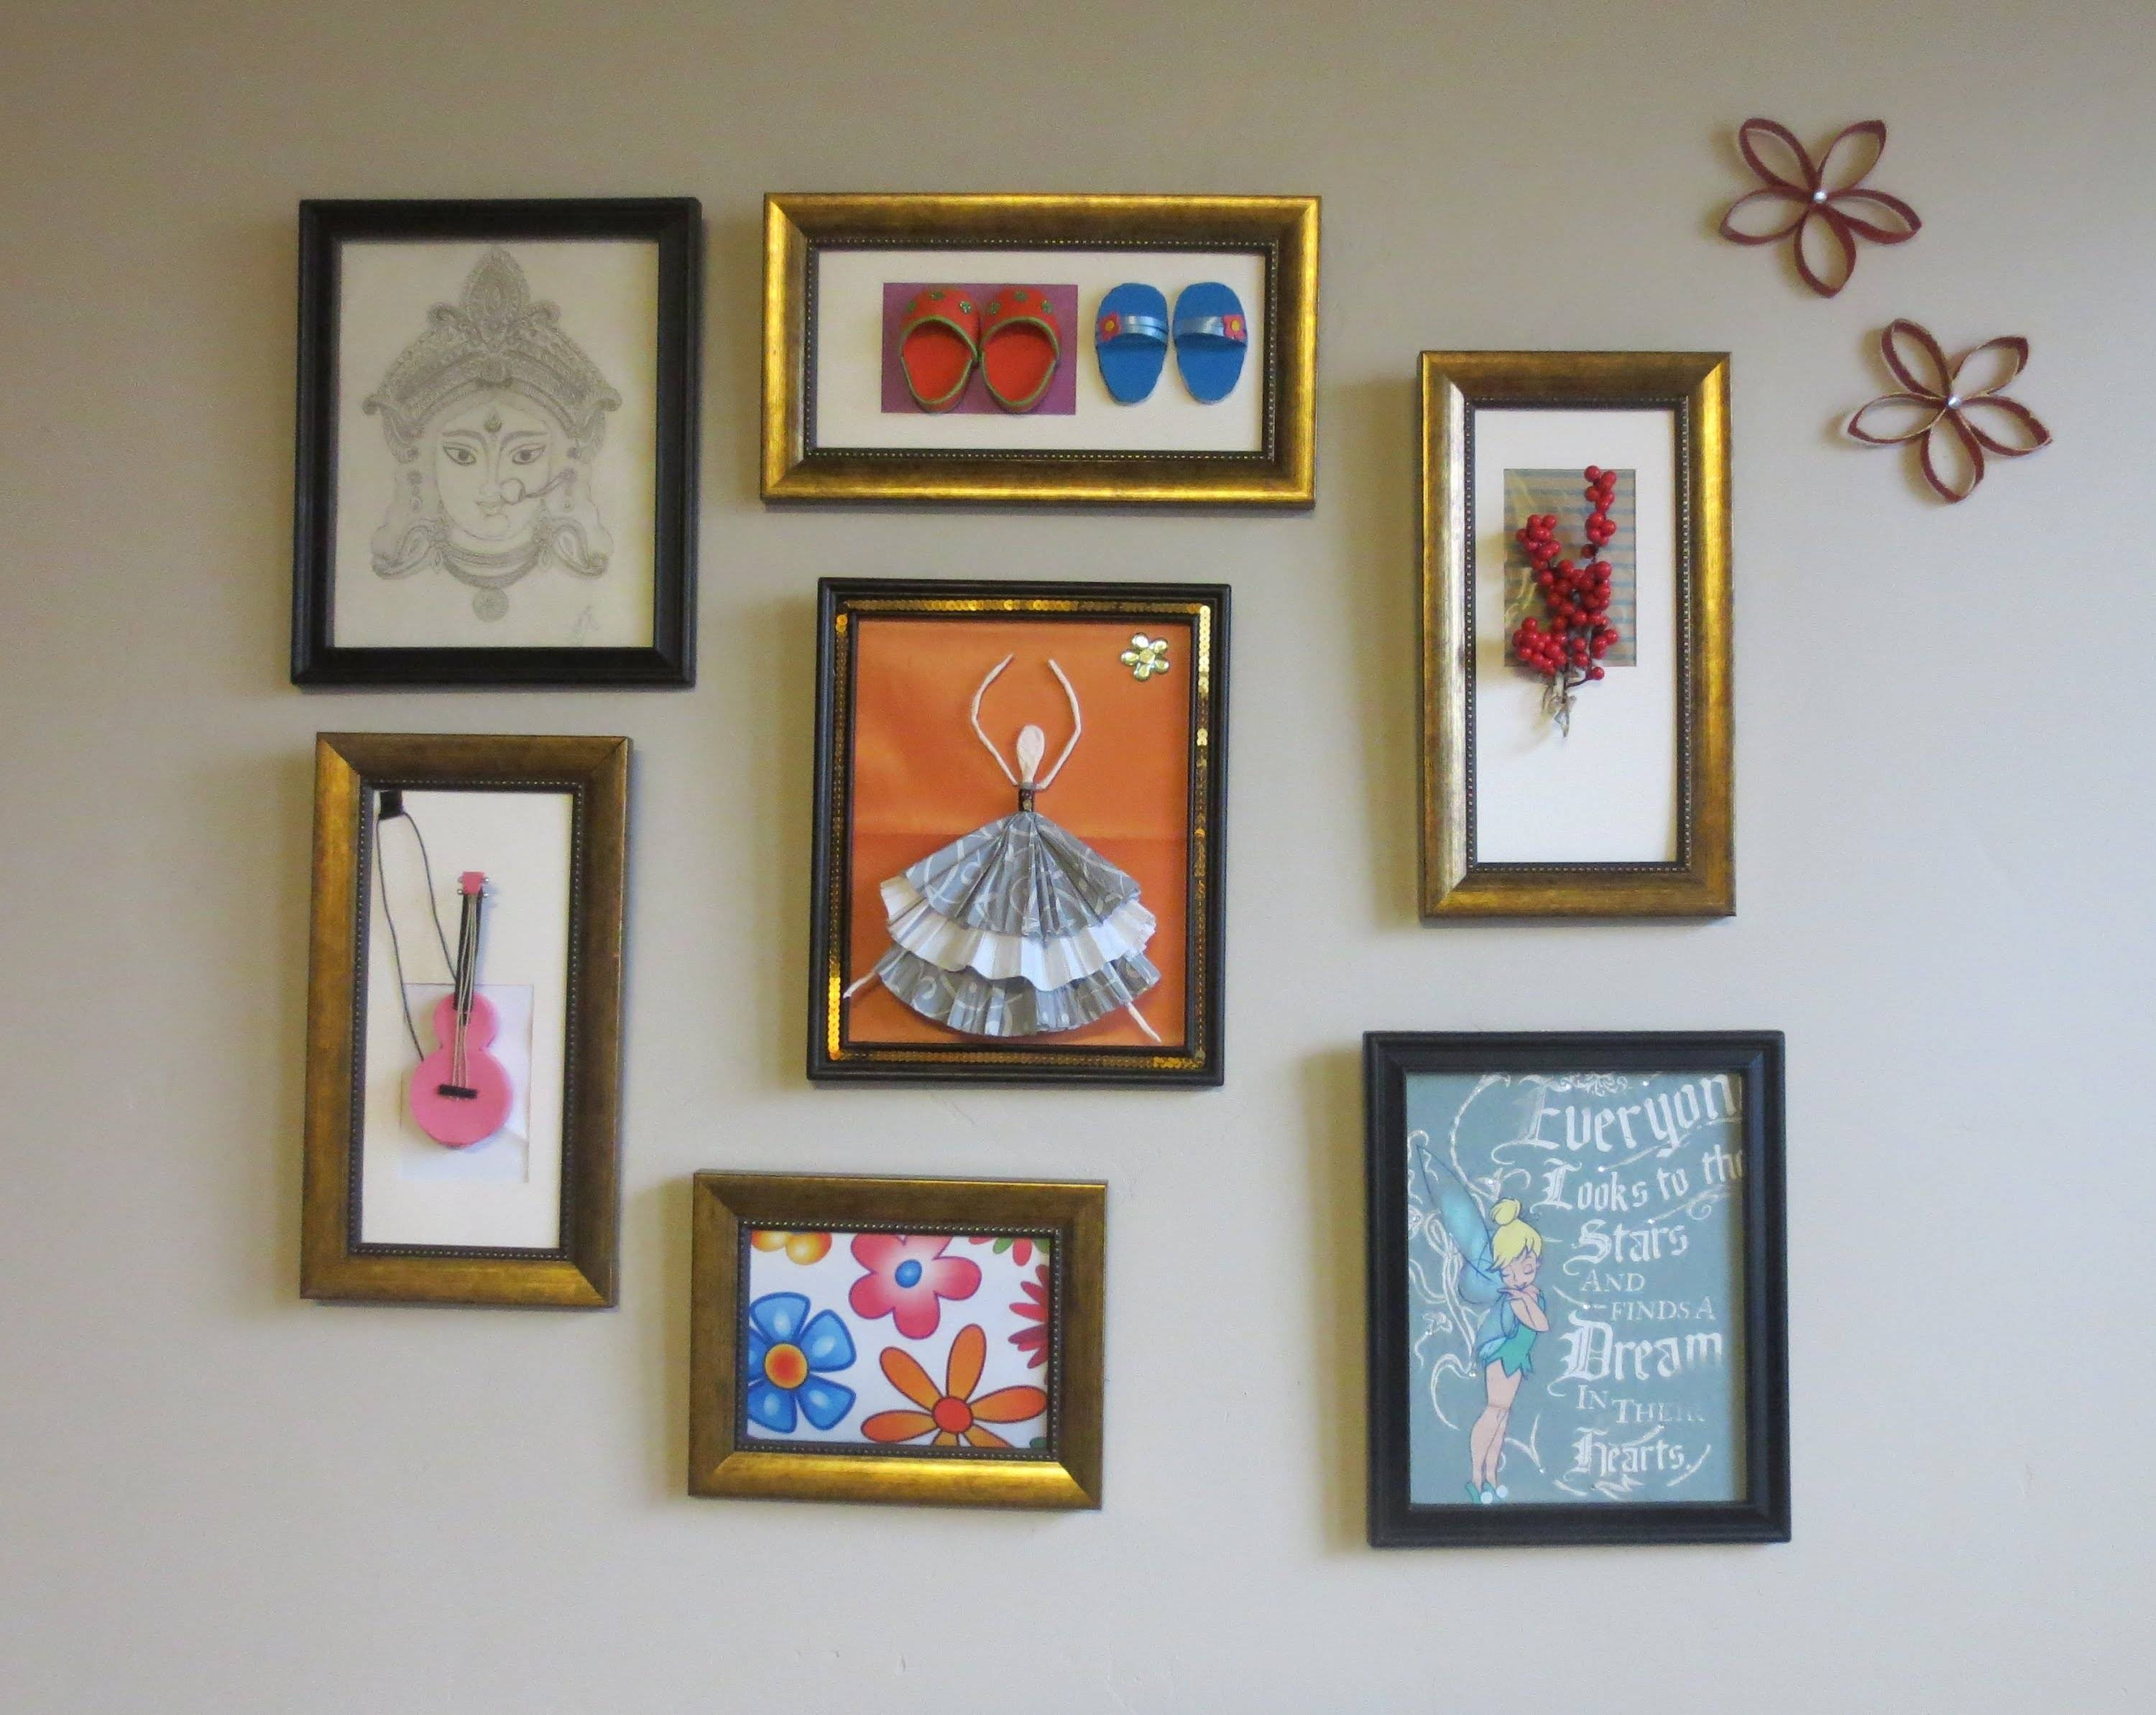 Home Decor : Tshirt Graphic & 3D Wall Art Picture Frame Collage Inside Most Recent 3D Visual Wall Art (Gallery 7 of 20)